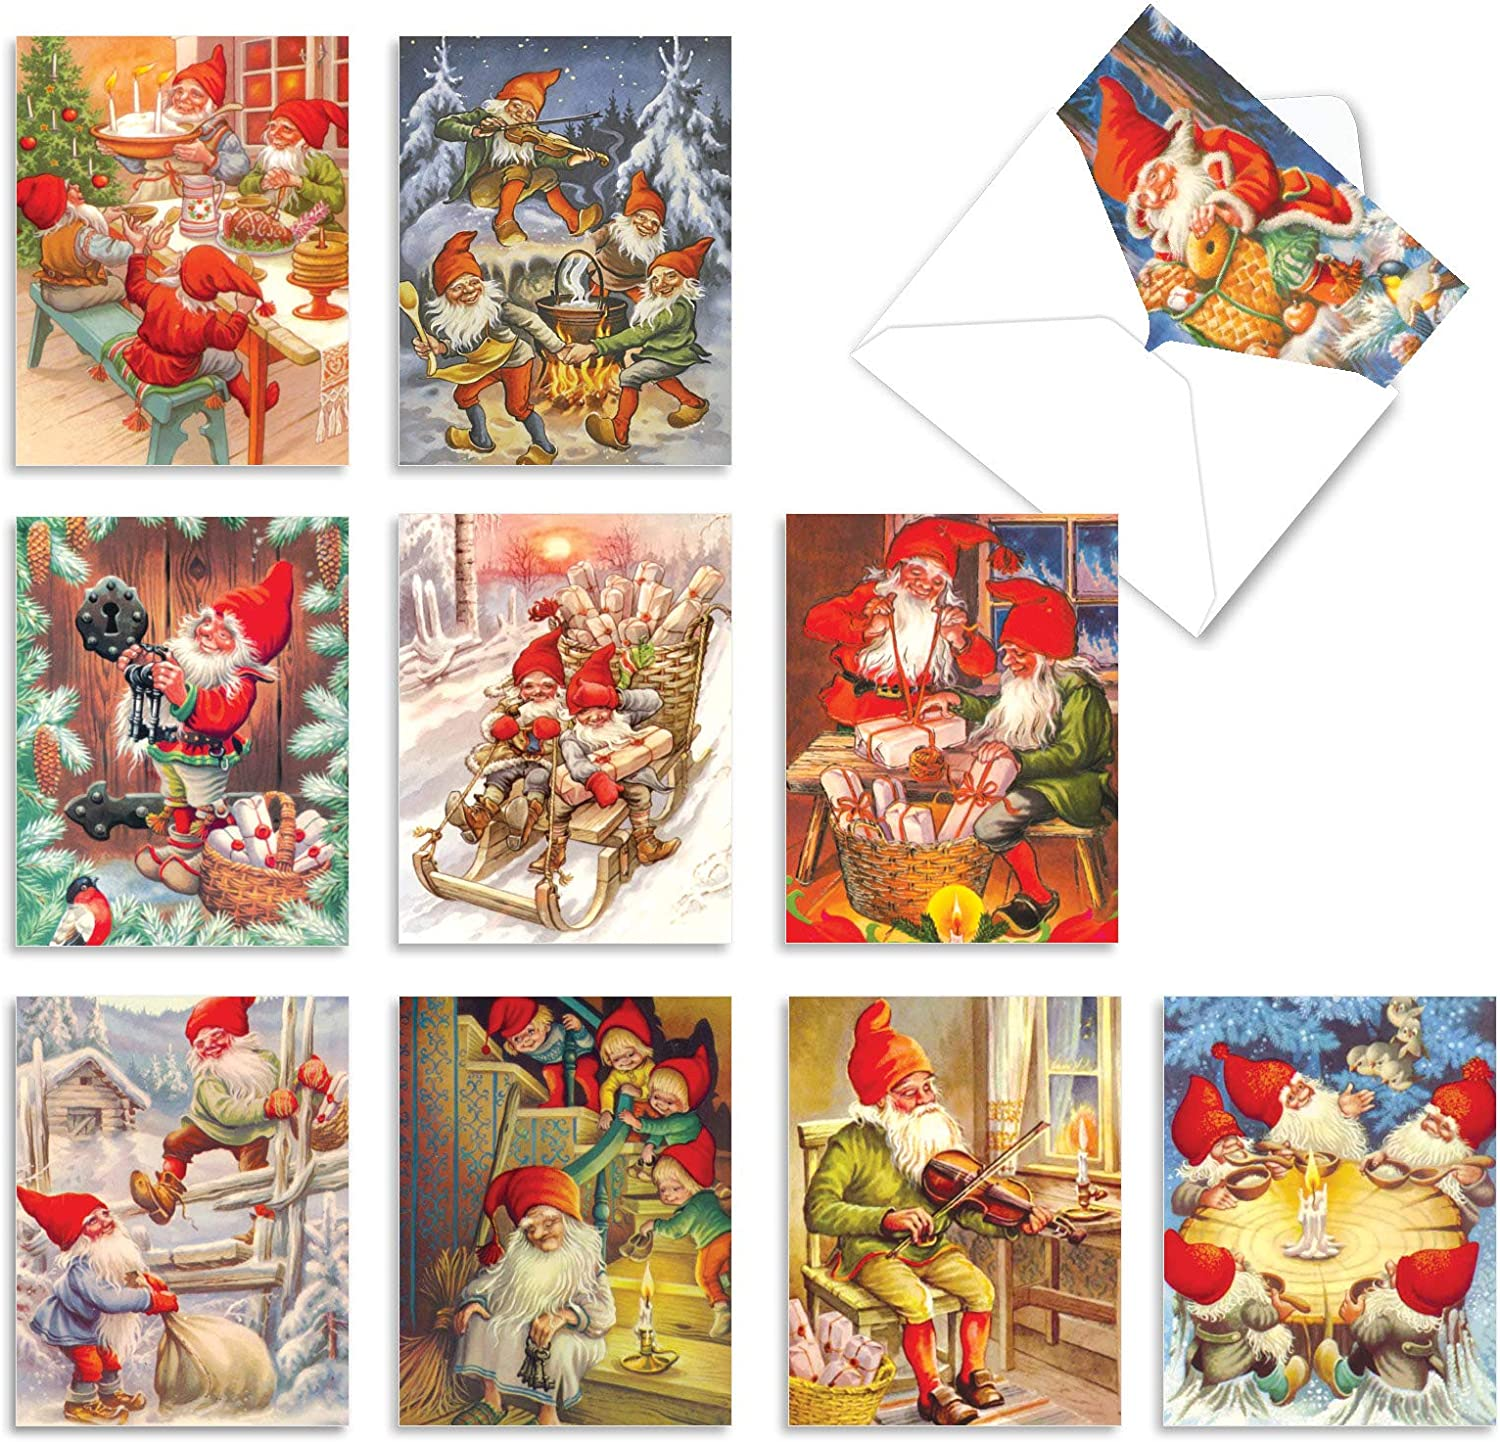 5.5x4.25 12 Pack Christmas Gnomes Blank Note Cards Holiday Greeting Cards with Envelopes 4 Unique Designs